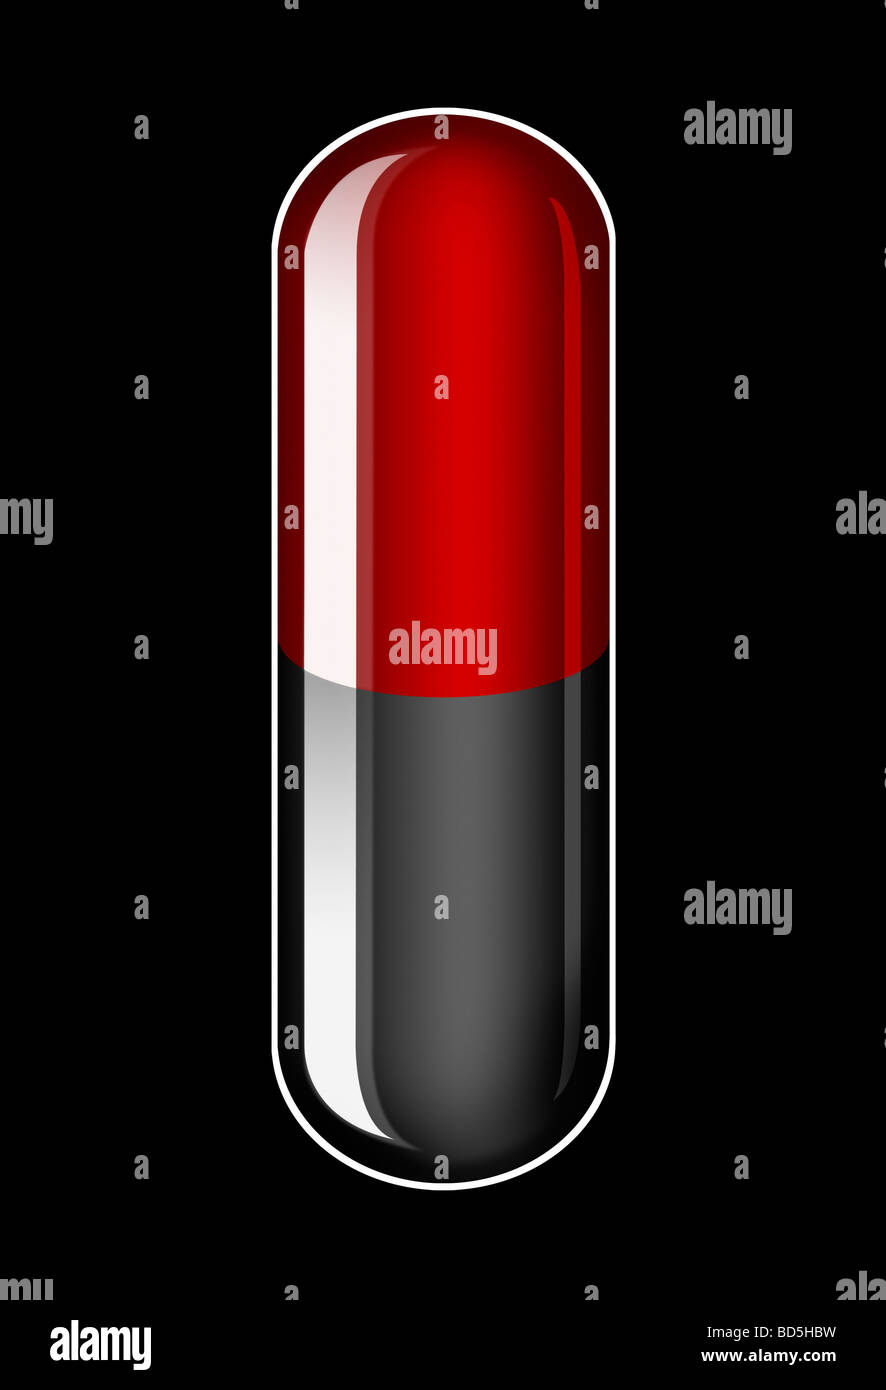 Illustration of a single generic Red and Black Capsule on a black background - Stock Image